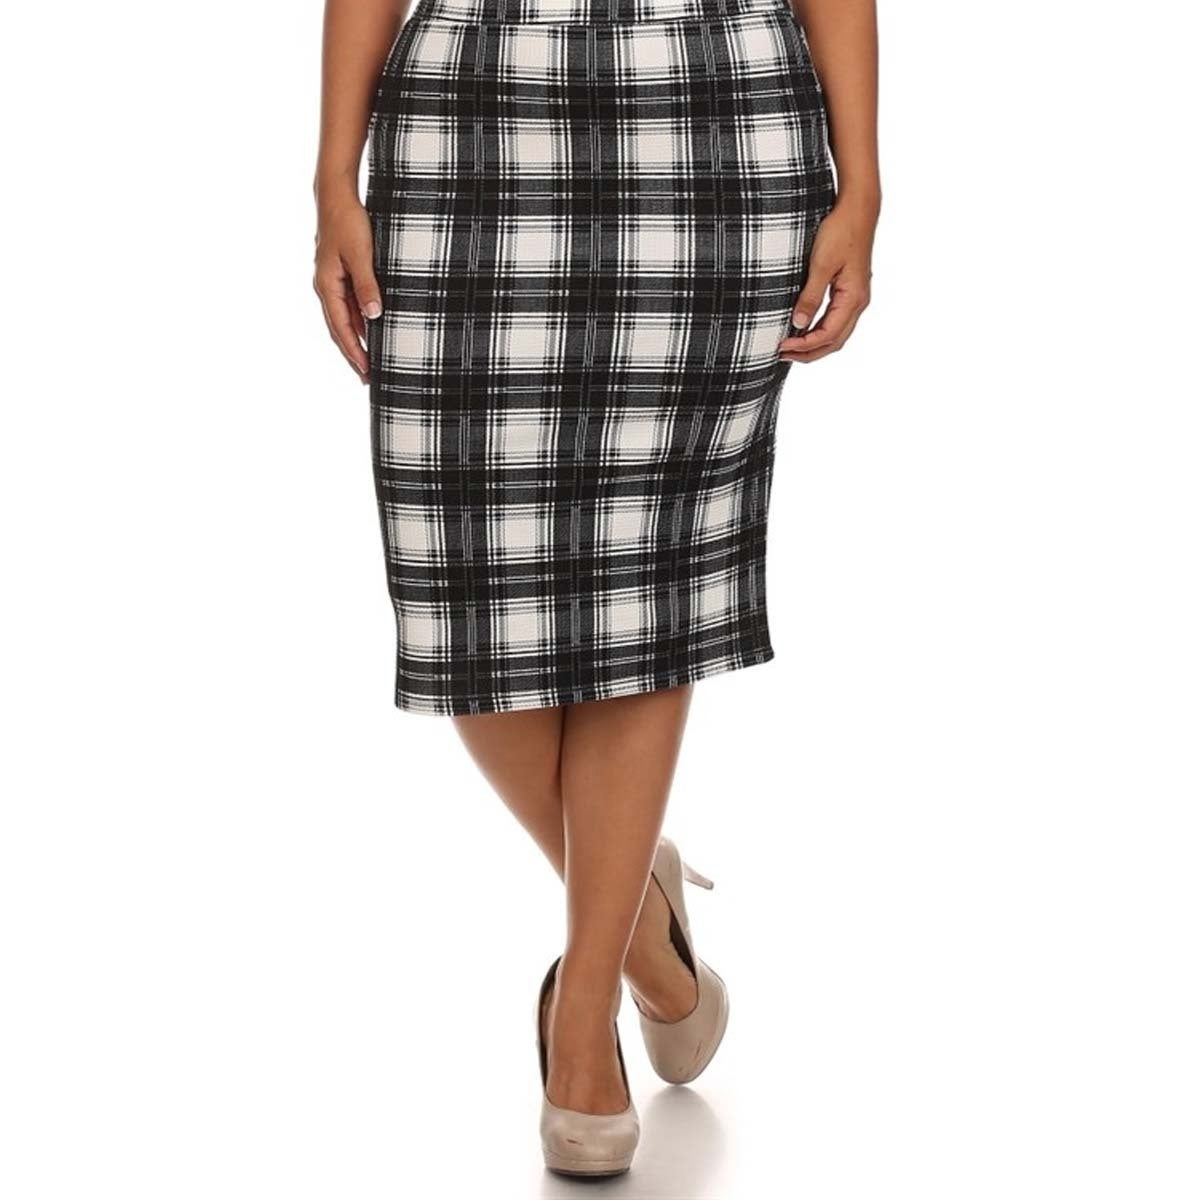 eada369c7d Shop MOA Collection Women's Plus Size High Waisted Plaid Print Skirt ...